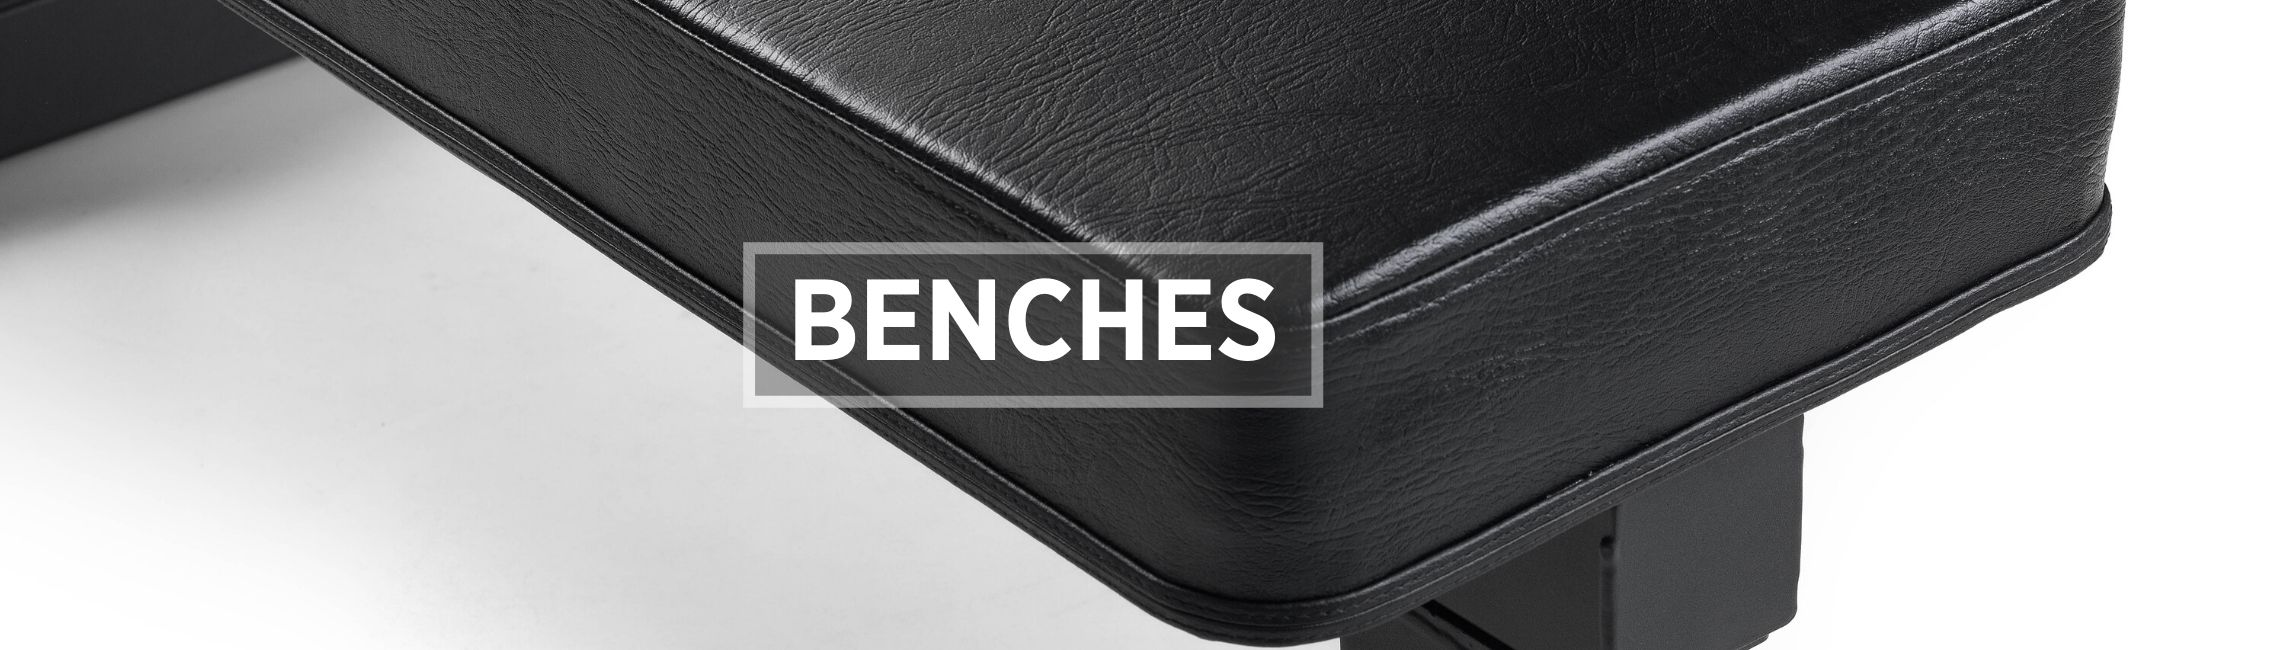 Weight Benches